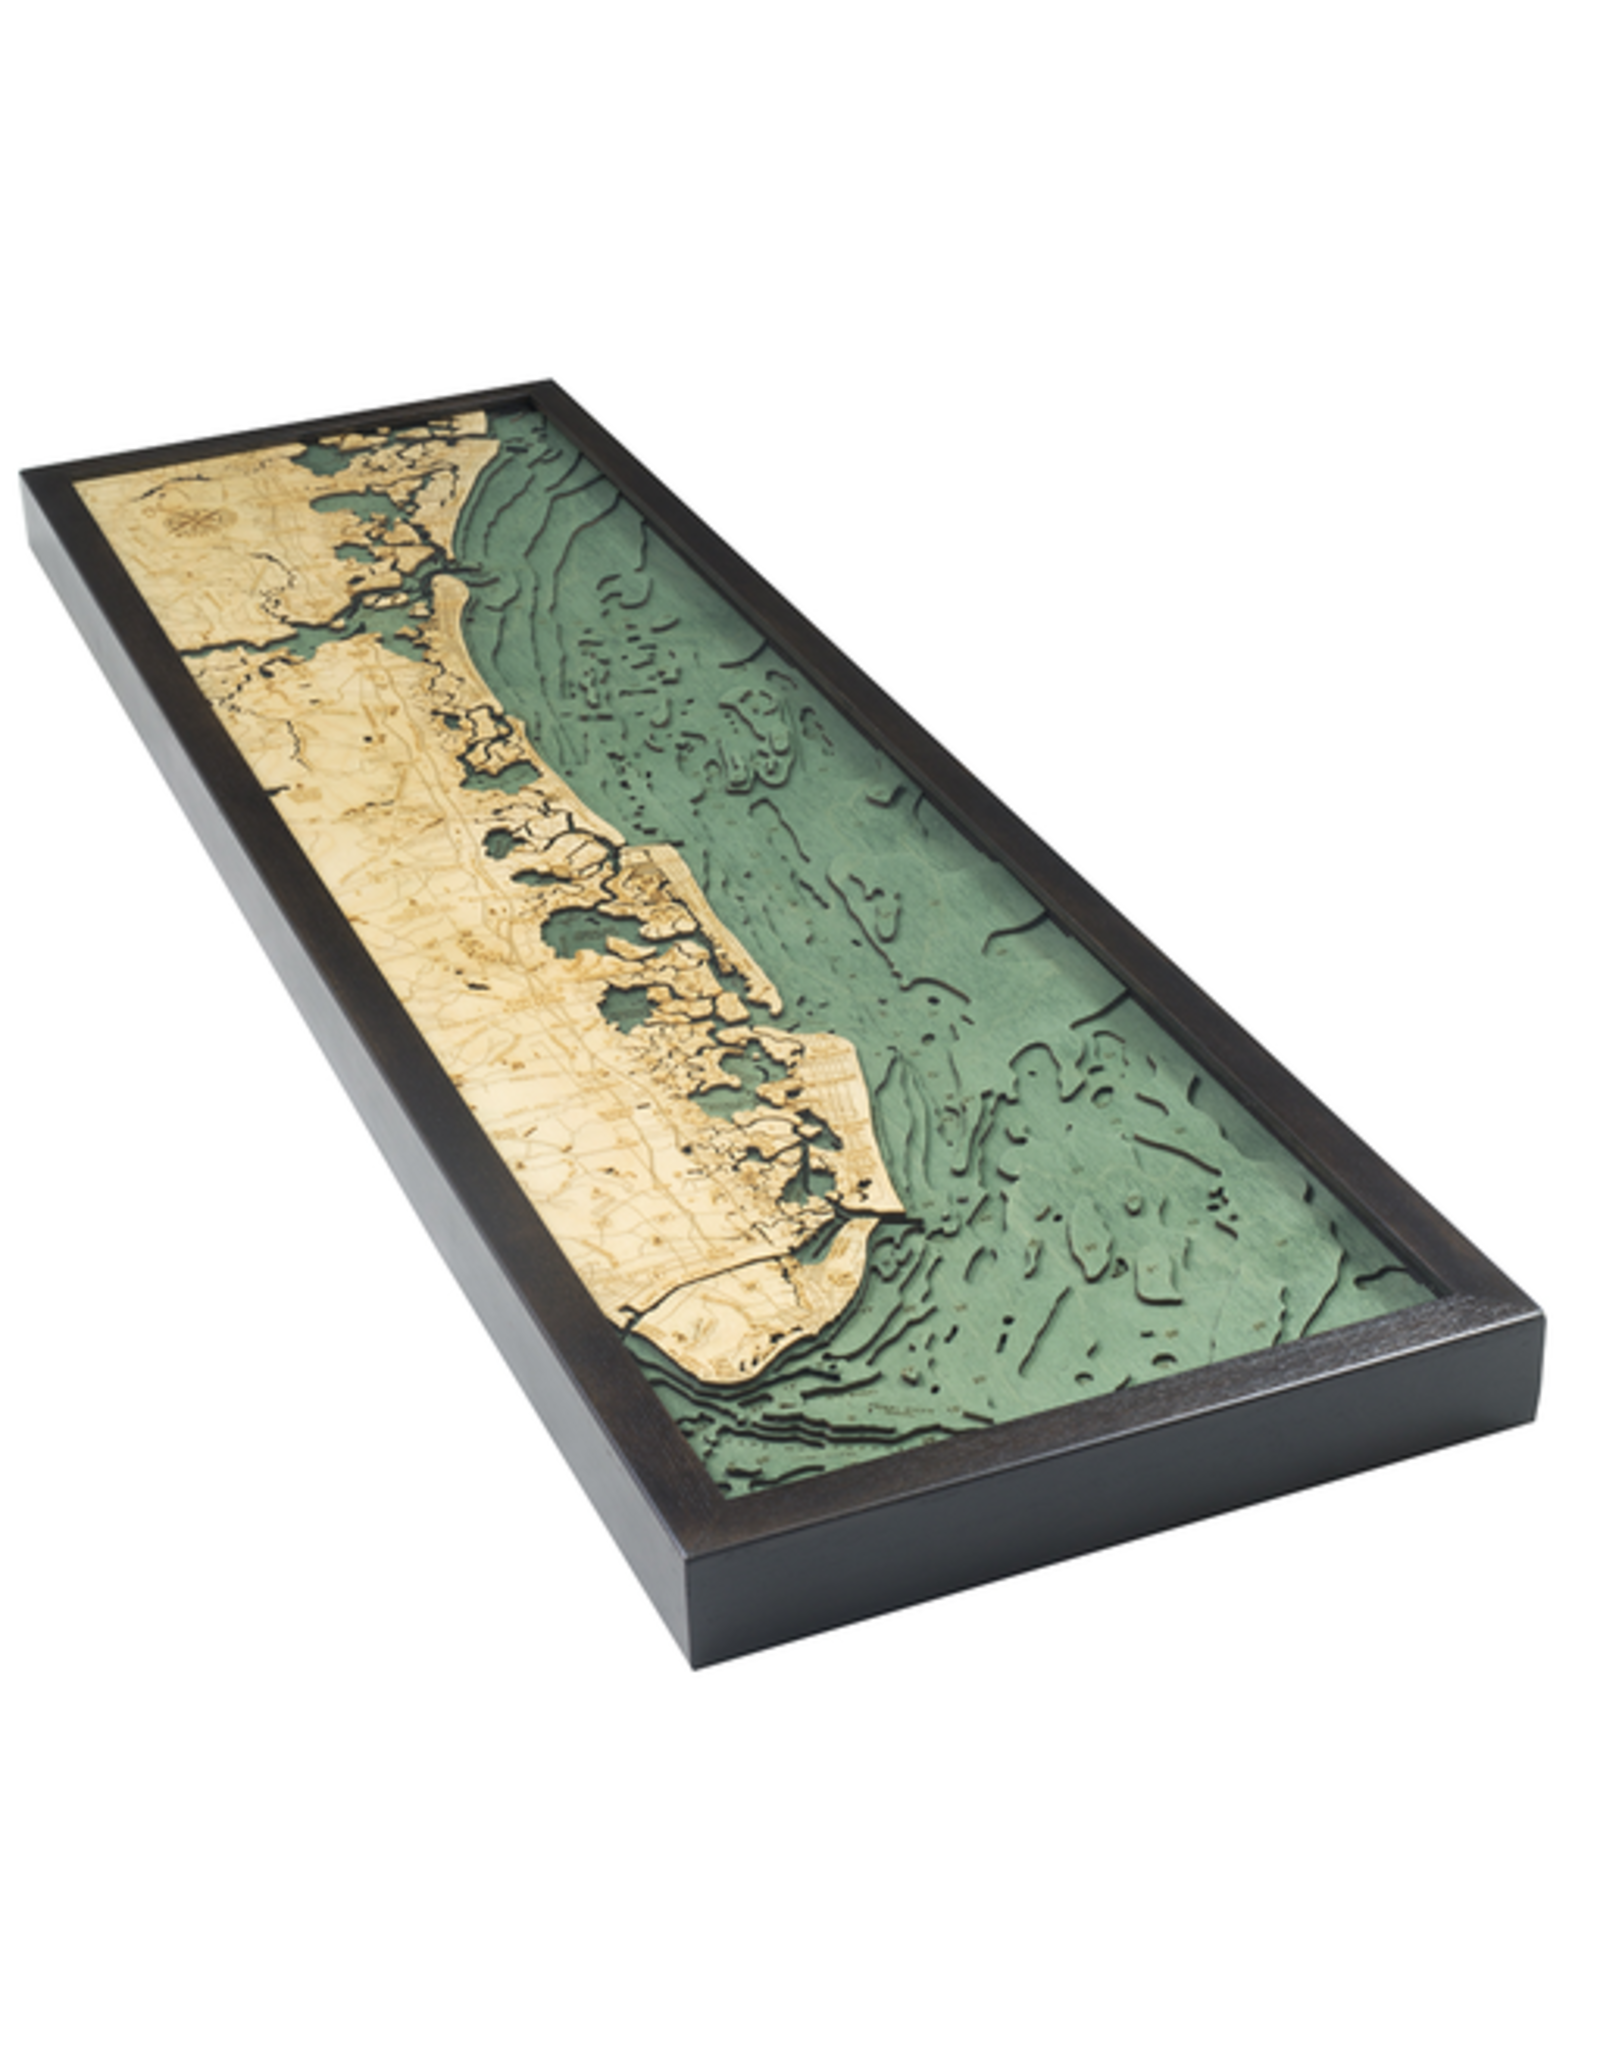 WoodCharts South Shore, NJ (Bathymetric 3-D Wood Carved Nautical Chart)